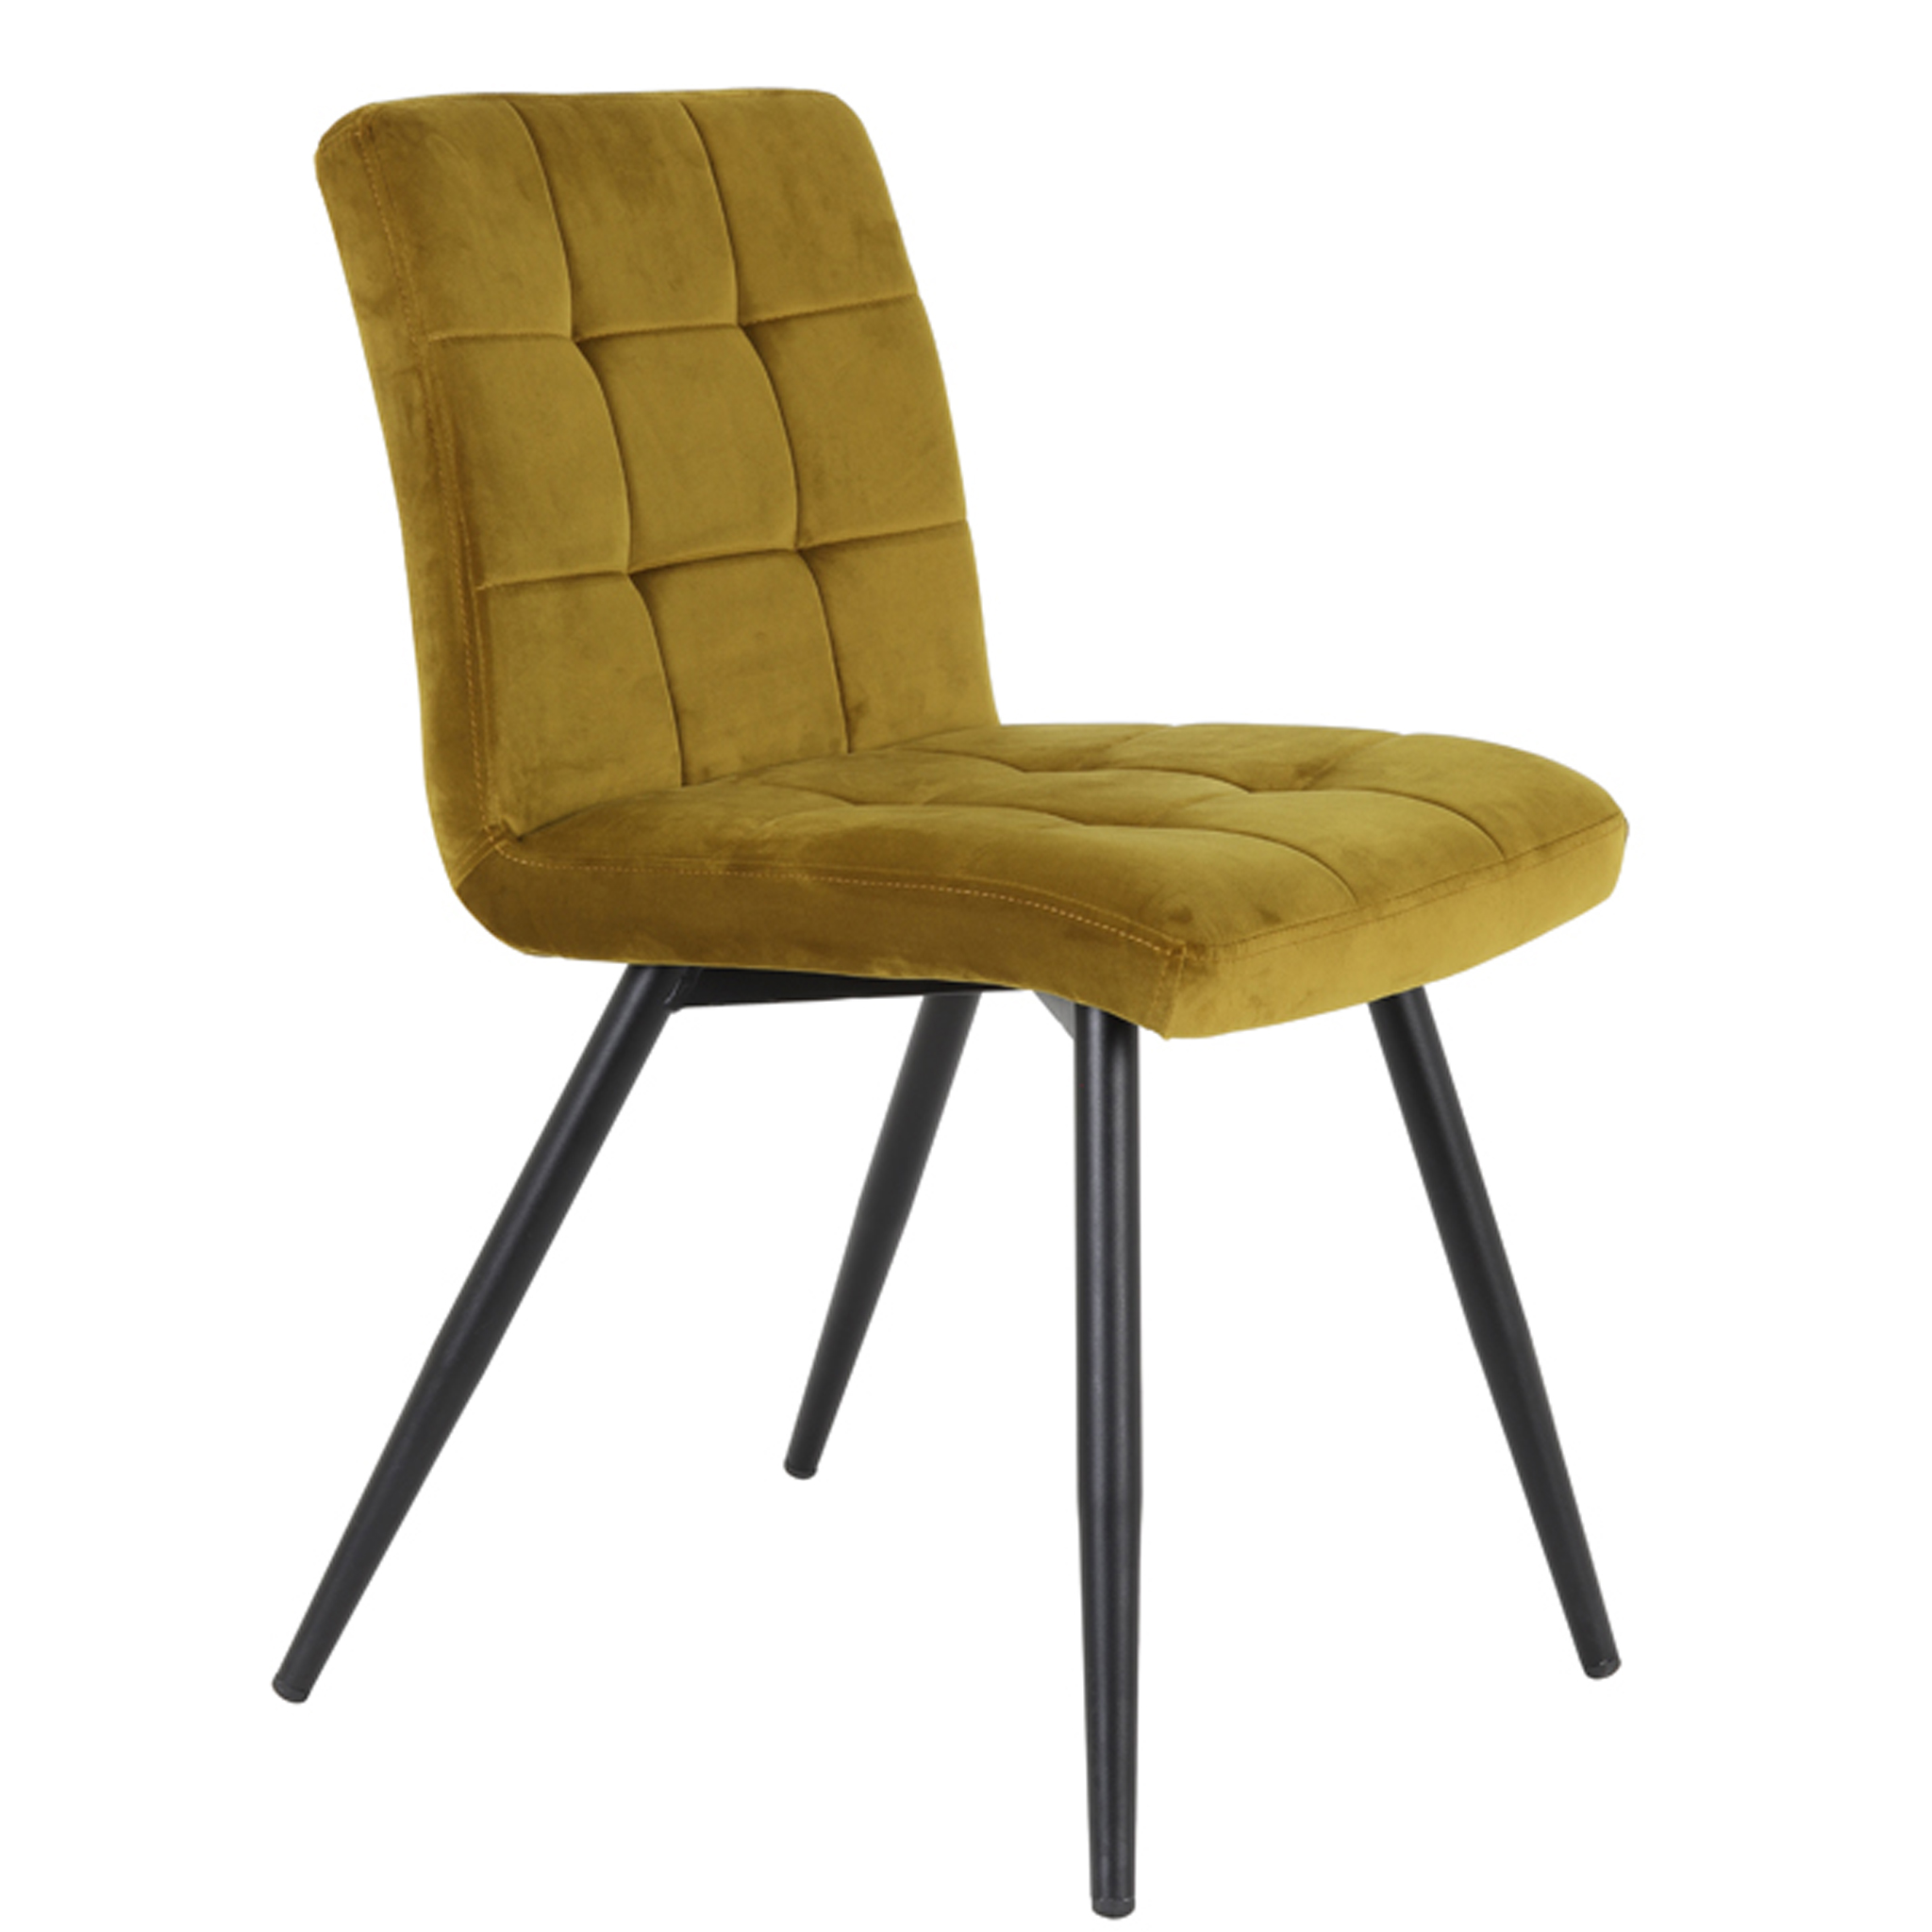 0016 Ochre velvet chair